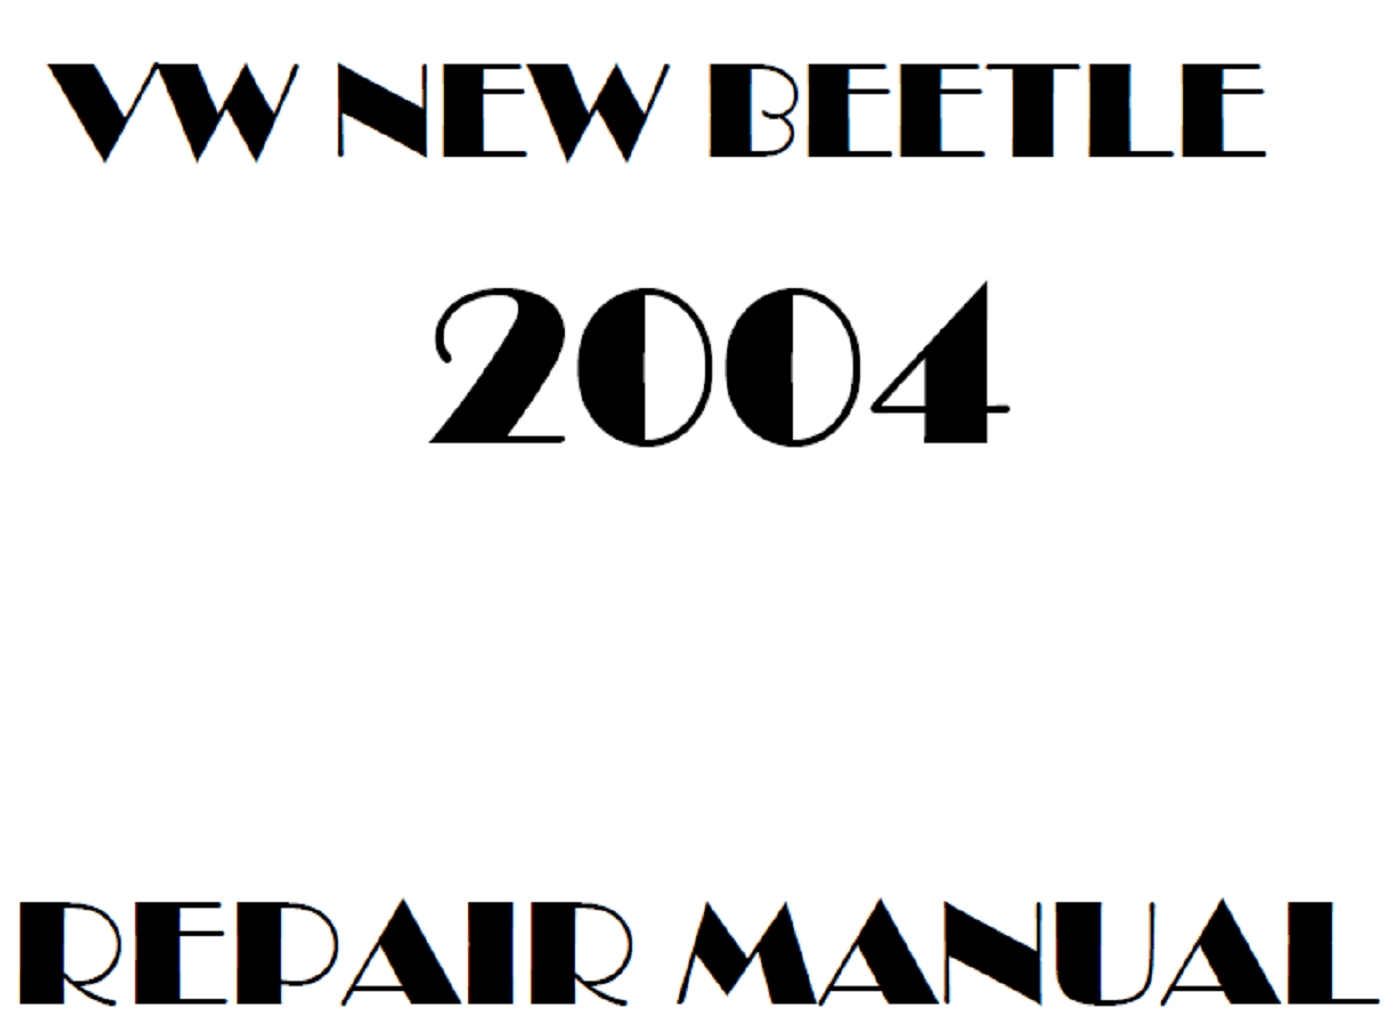 2004 Volkswagen New Beetle repair manual